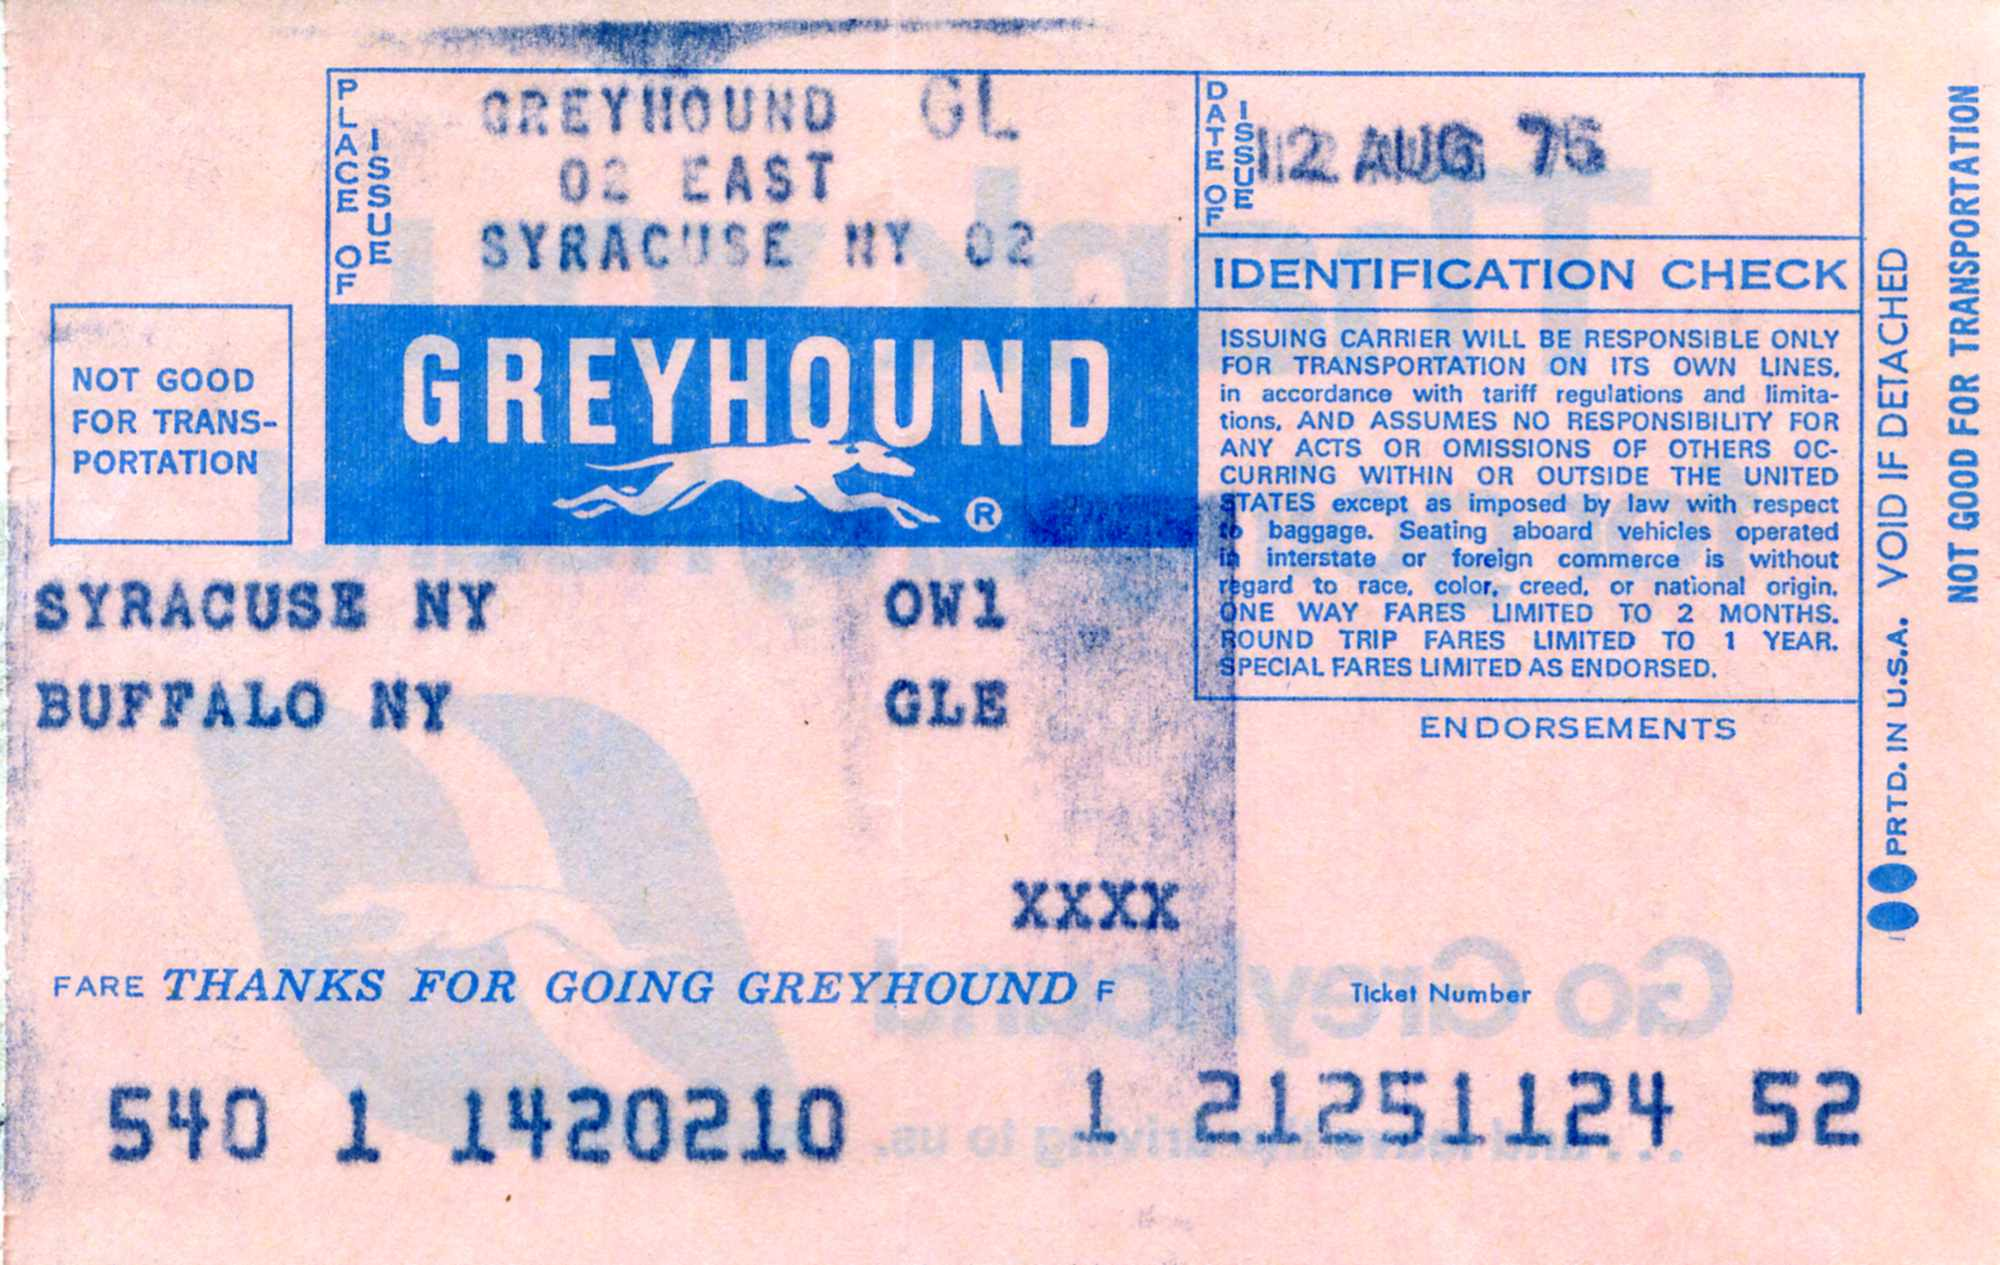 Greyhound Bus Routes. Find all Greyhound schedules, routes, times, prices, departure and arrival bus stations. Compare options for Greyhound schedules and book official bus tickets with confidence on derfkasiber.ga We provide you with all Greyhound information on bus schedules because we want you to have peace of mind when booking your bus.